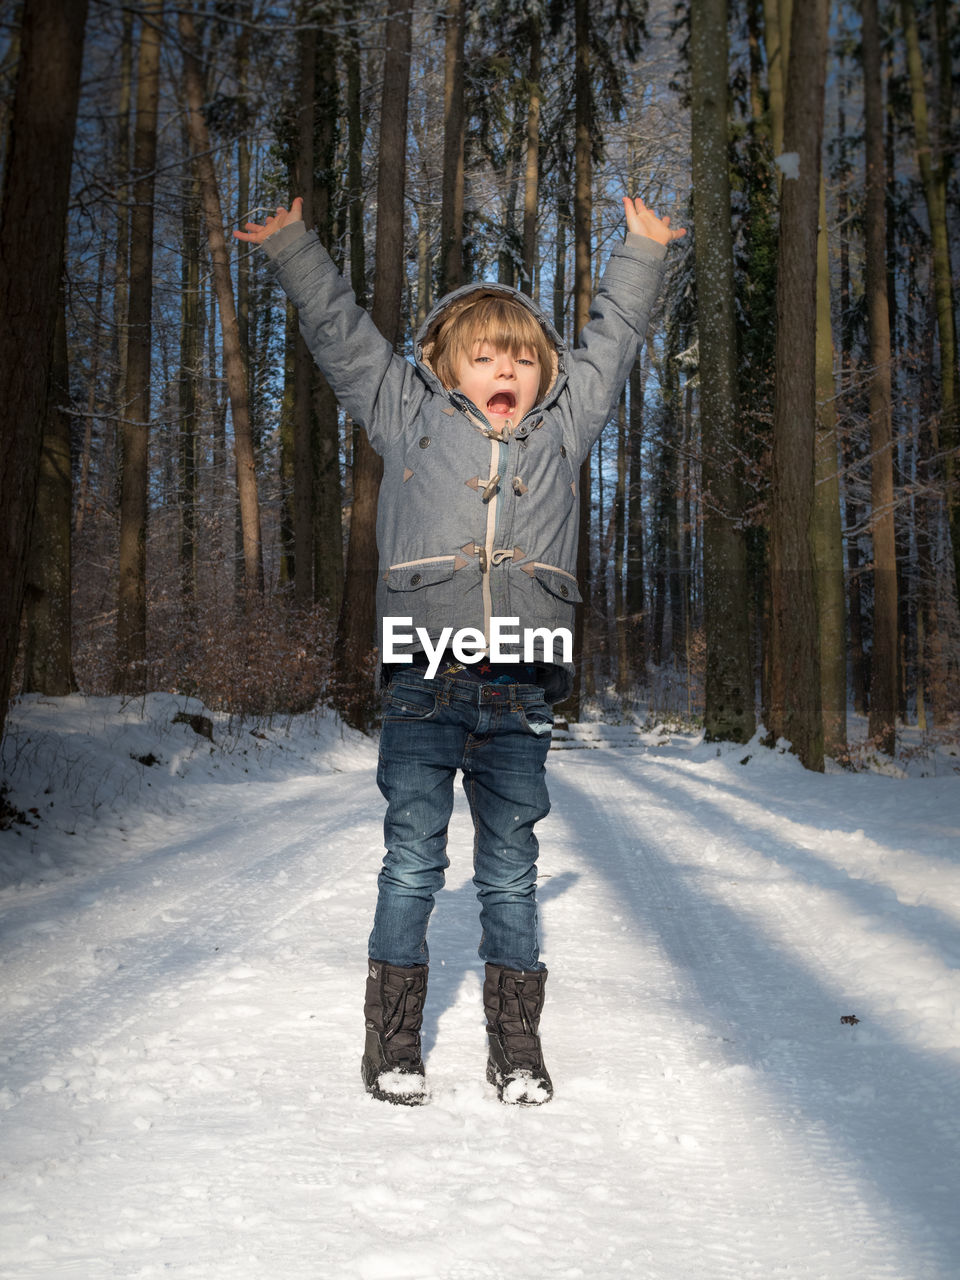 Full Length Of Boy With Arms Raised Standing On Snow Covered Forest